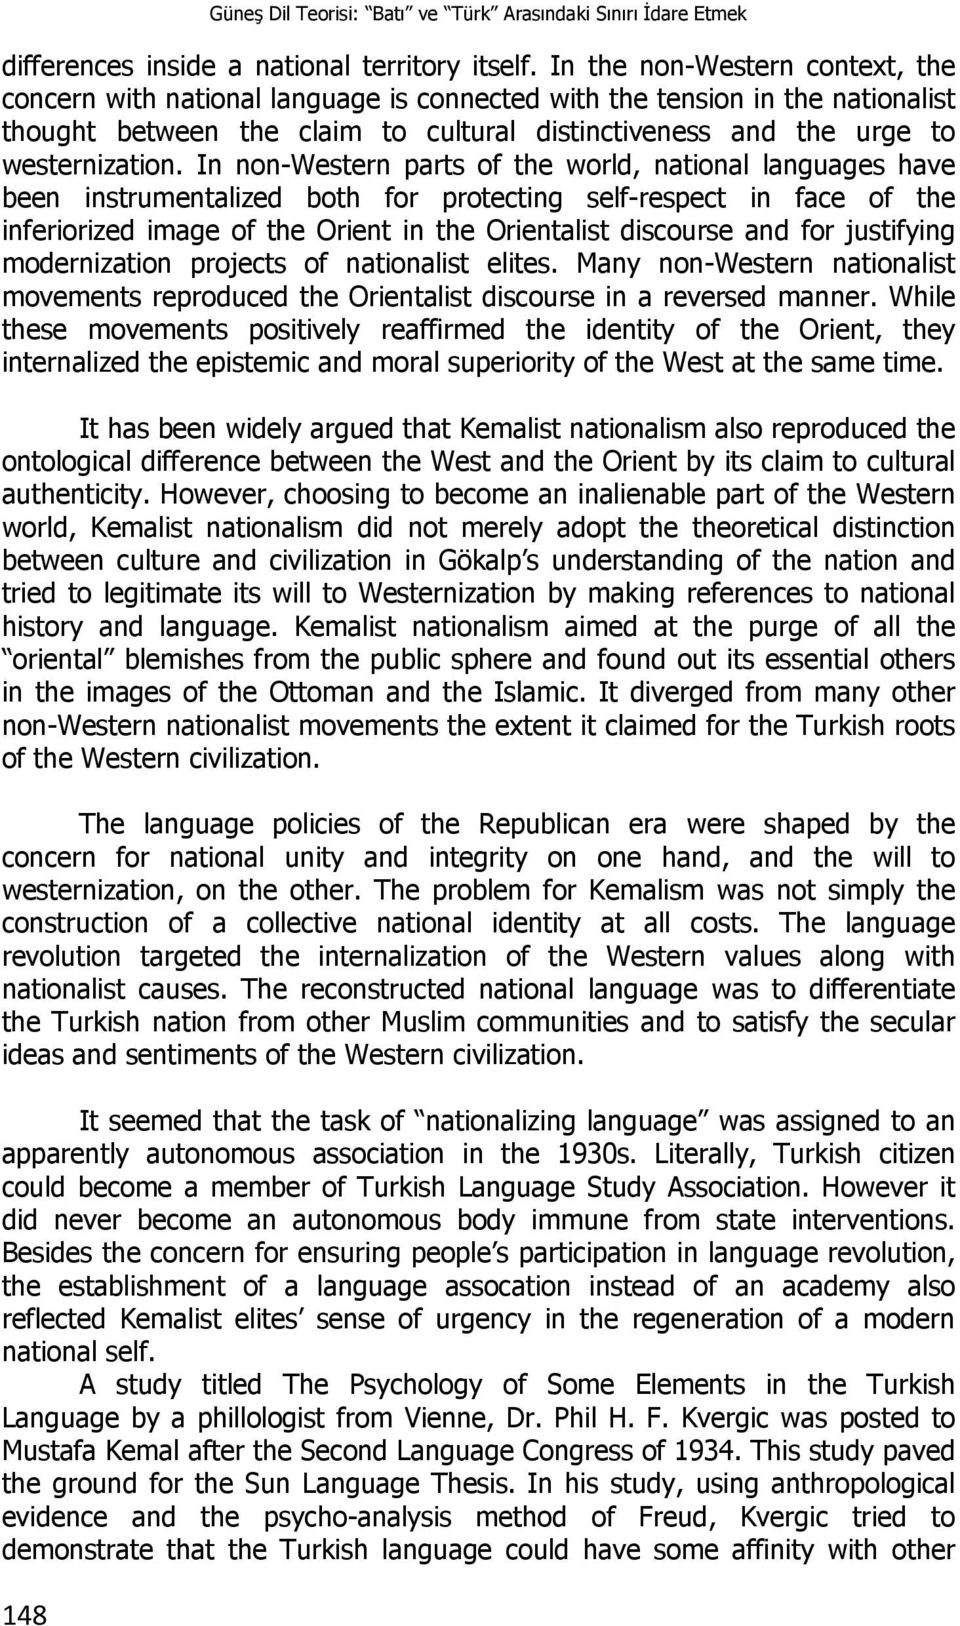 In non-western parts of the world, national languages have been instrumentalized both for protecting self-respect in face of the inferiorized image of the Orient in the Orientalist discourse and for